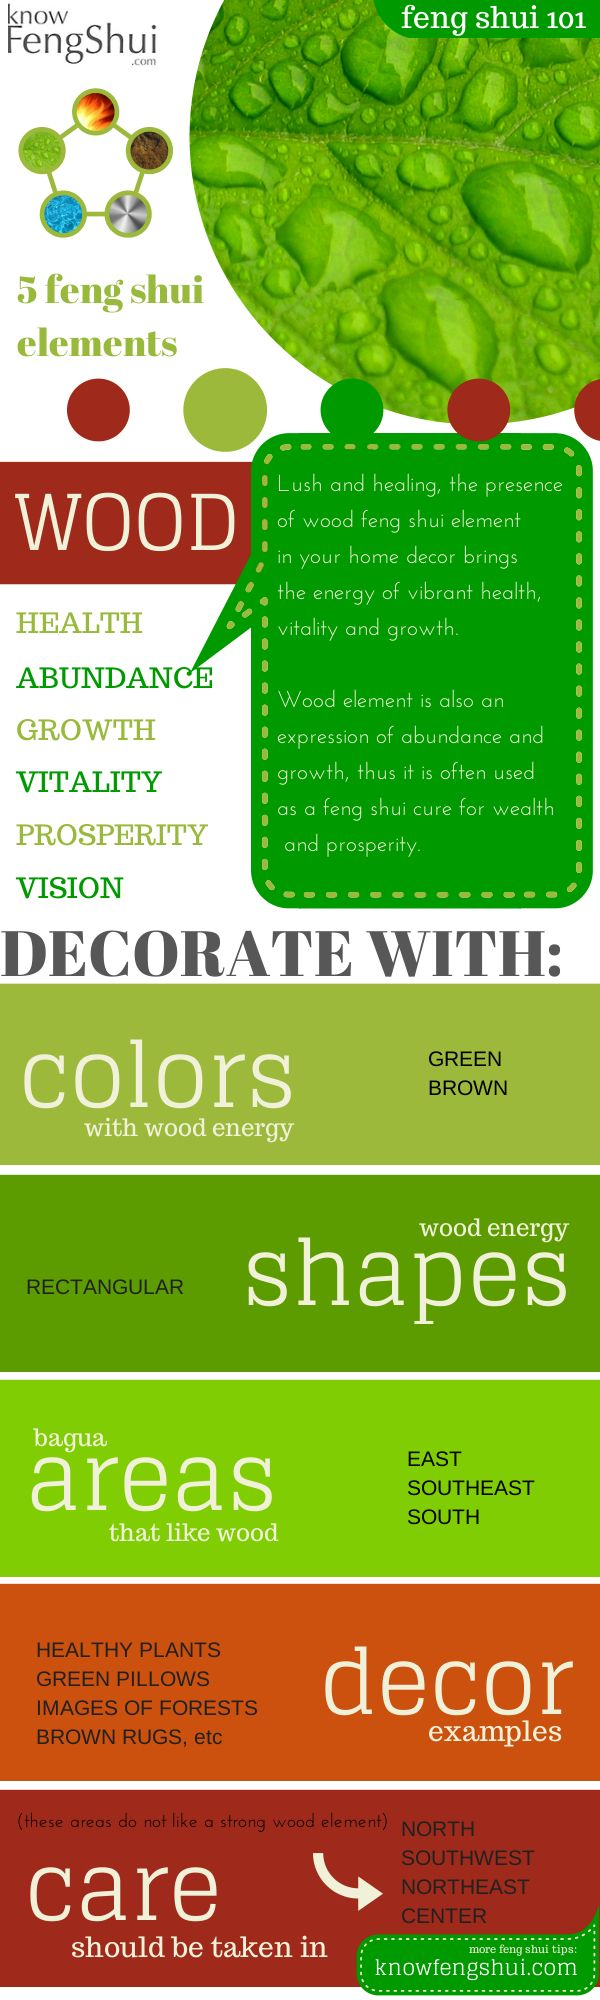 Easy feng shui decorating with wood element (for home or office)